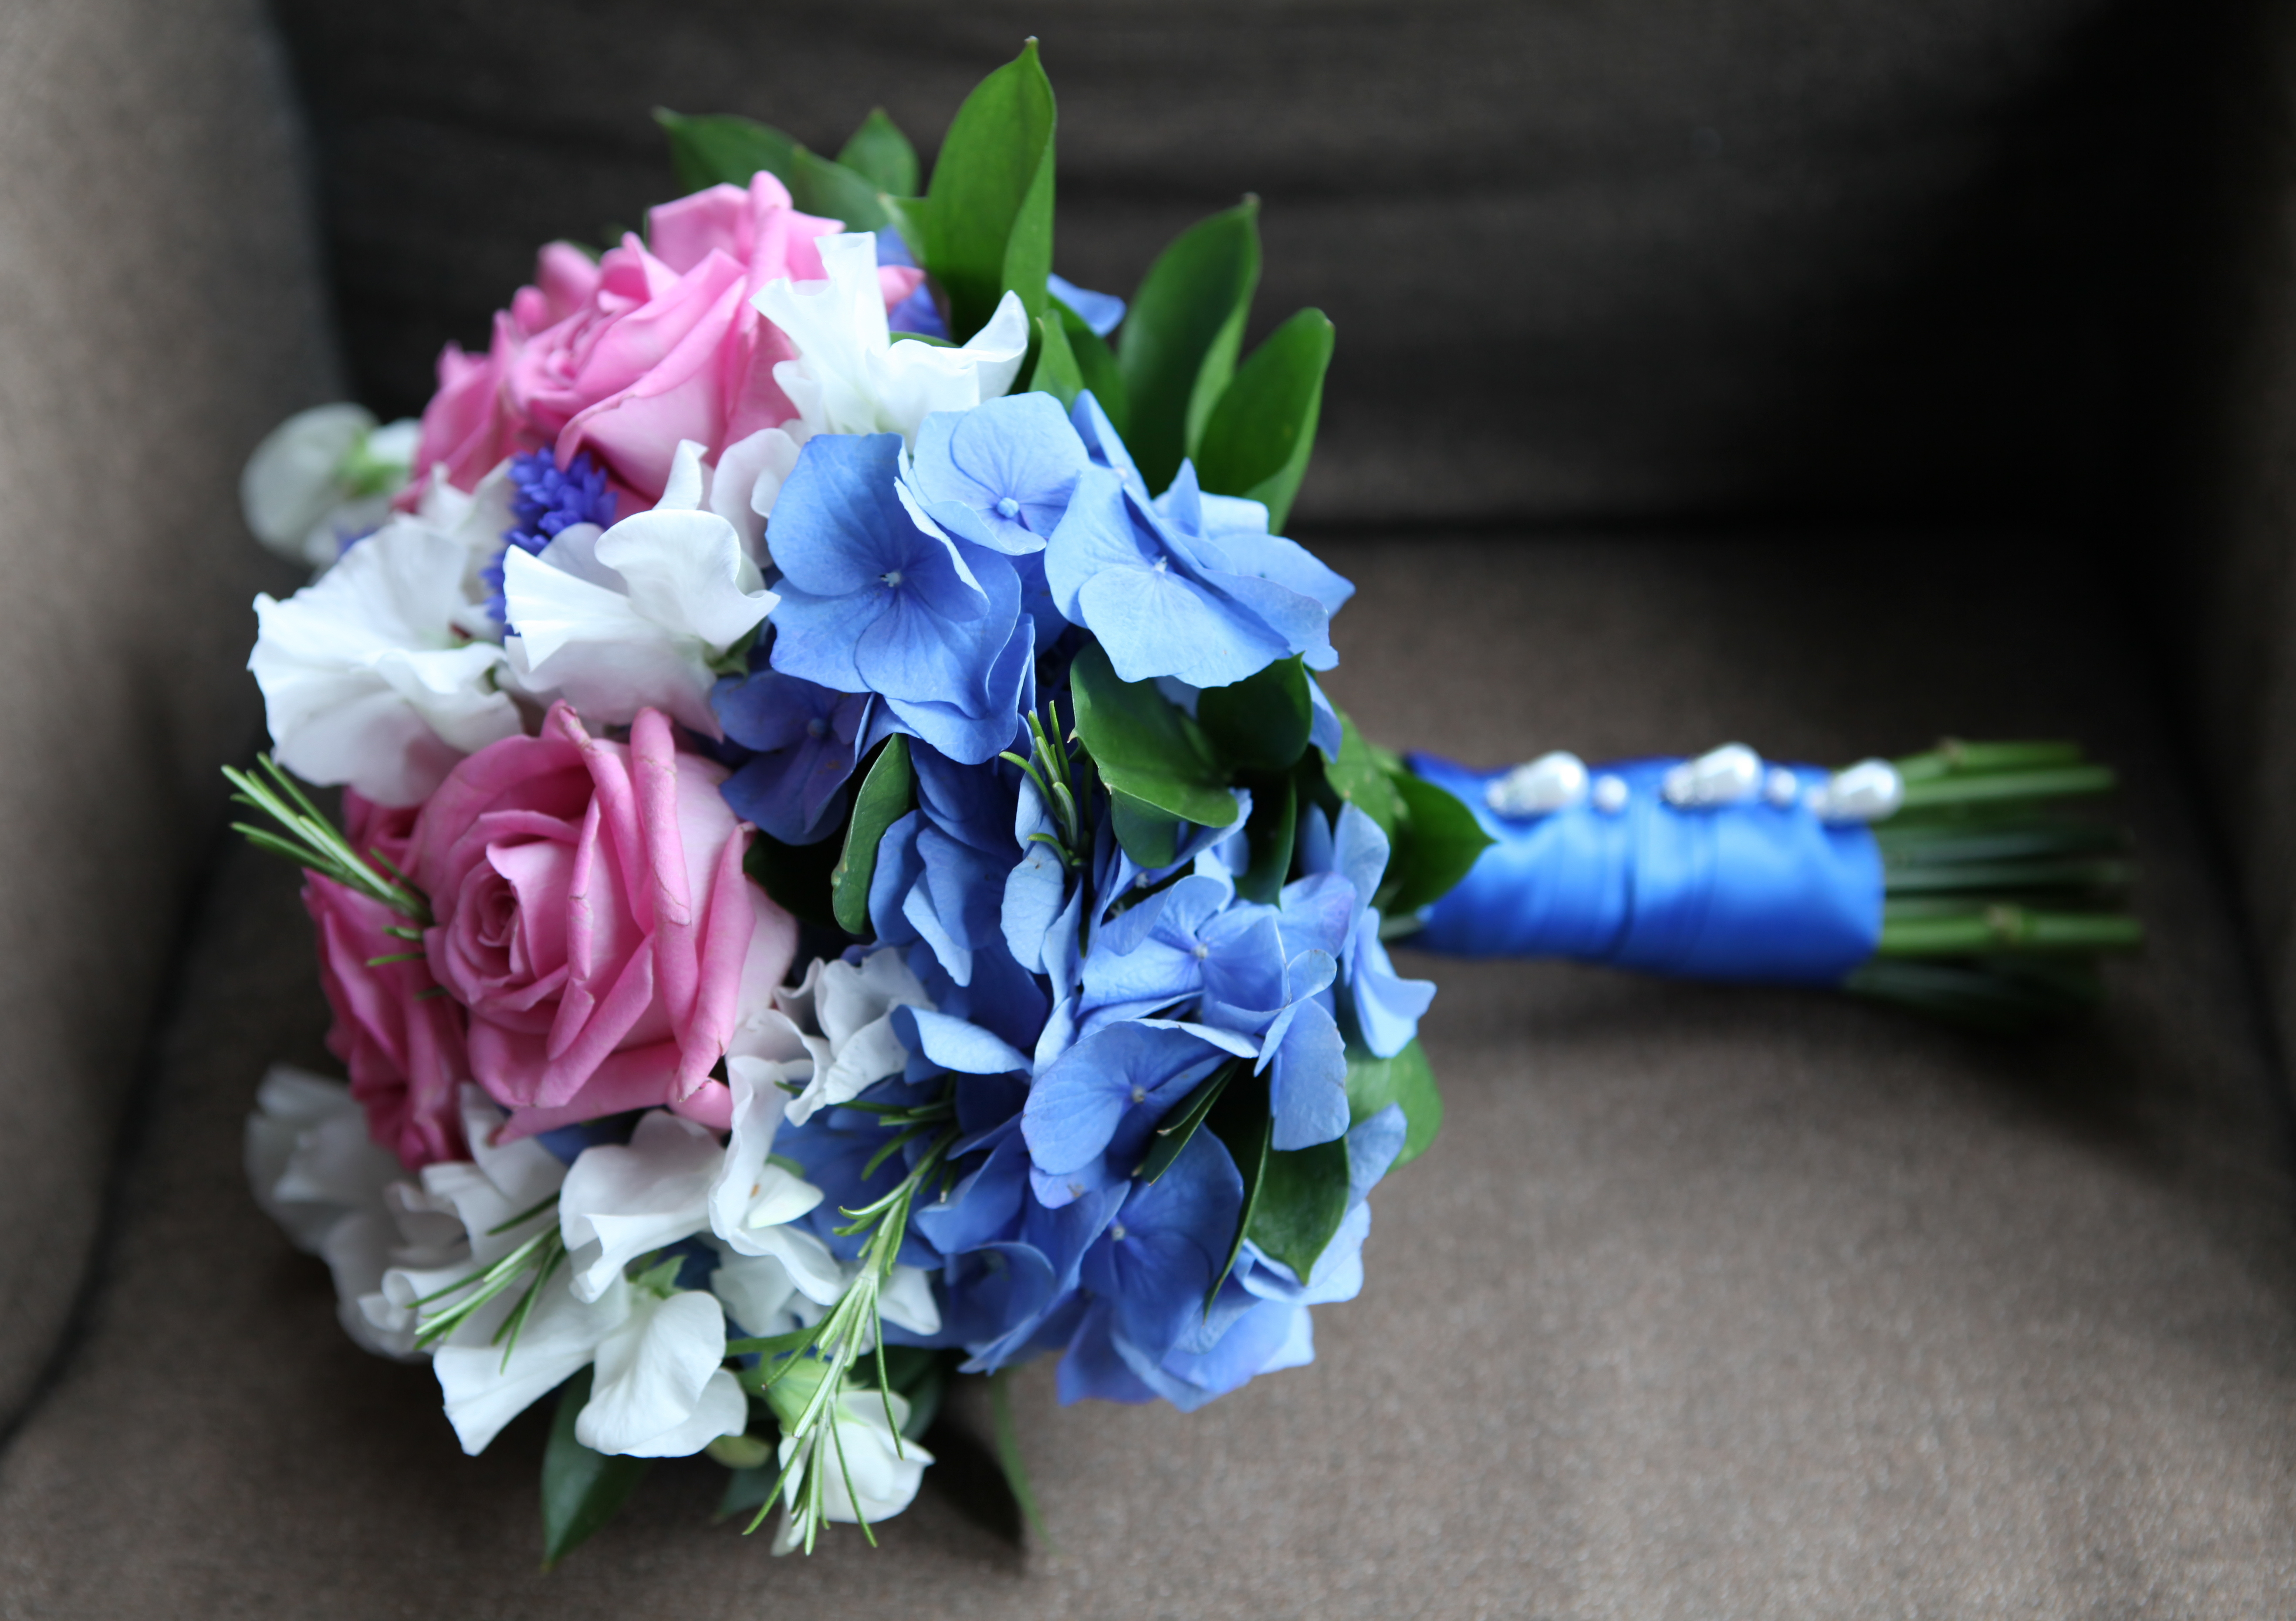 Blue and pink wedding flowers image collections flower decoration blue and pink wedding flowers choice image flower decoration ideas blue and pink wedding flowers gallery mightylinksfo